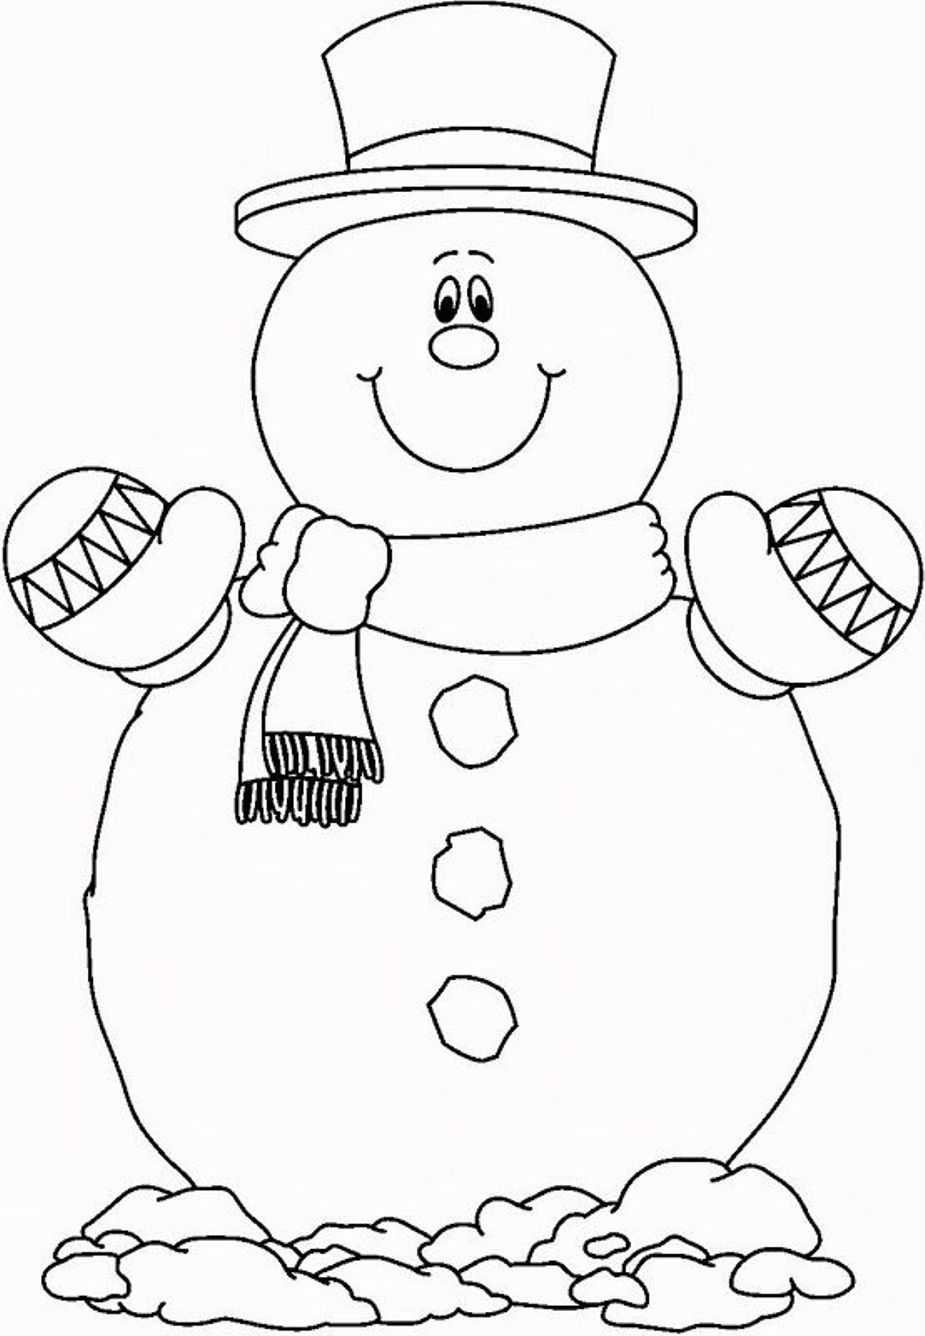 Frosty Coloring Pages Printable Snowman Coloring Pages Coloring Pages Winter Printable Snowman